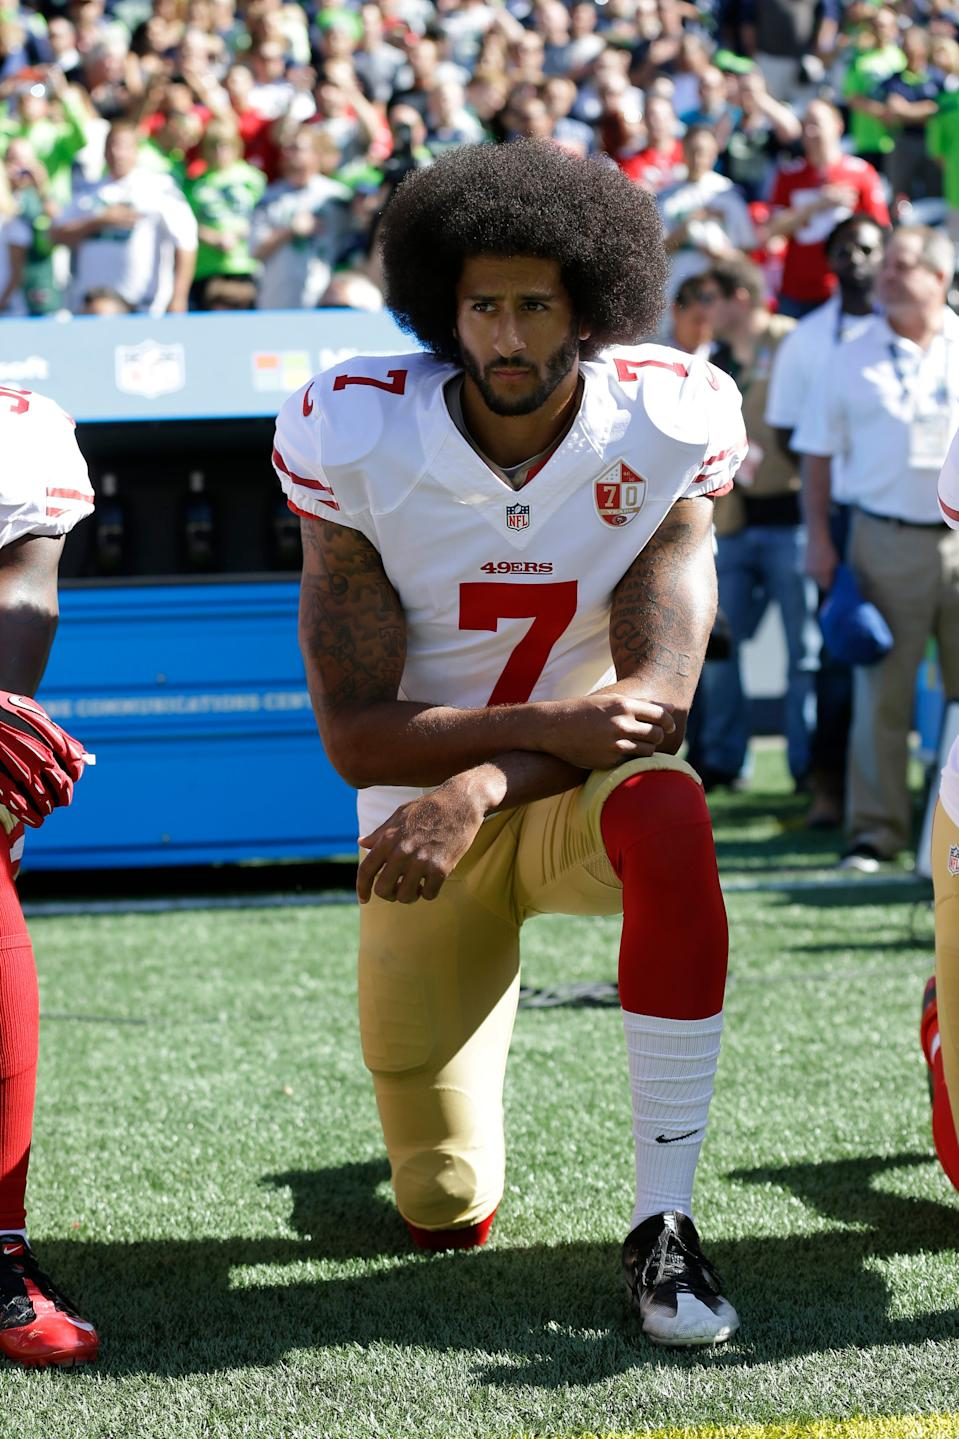 Colin Kaepernick kneels before a San Francisco 49ers game.